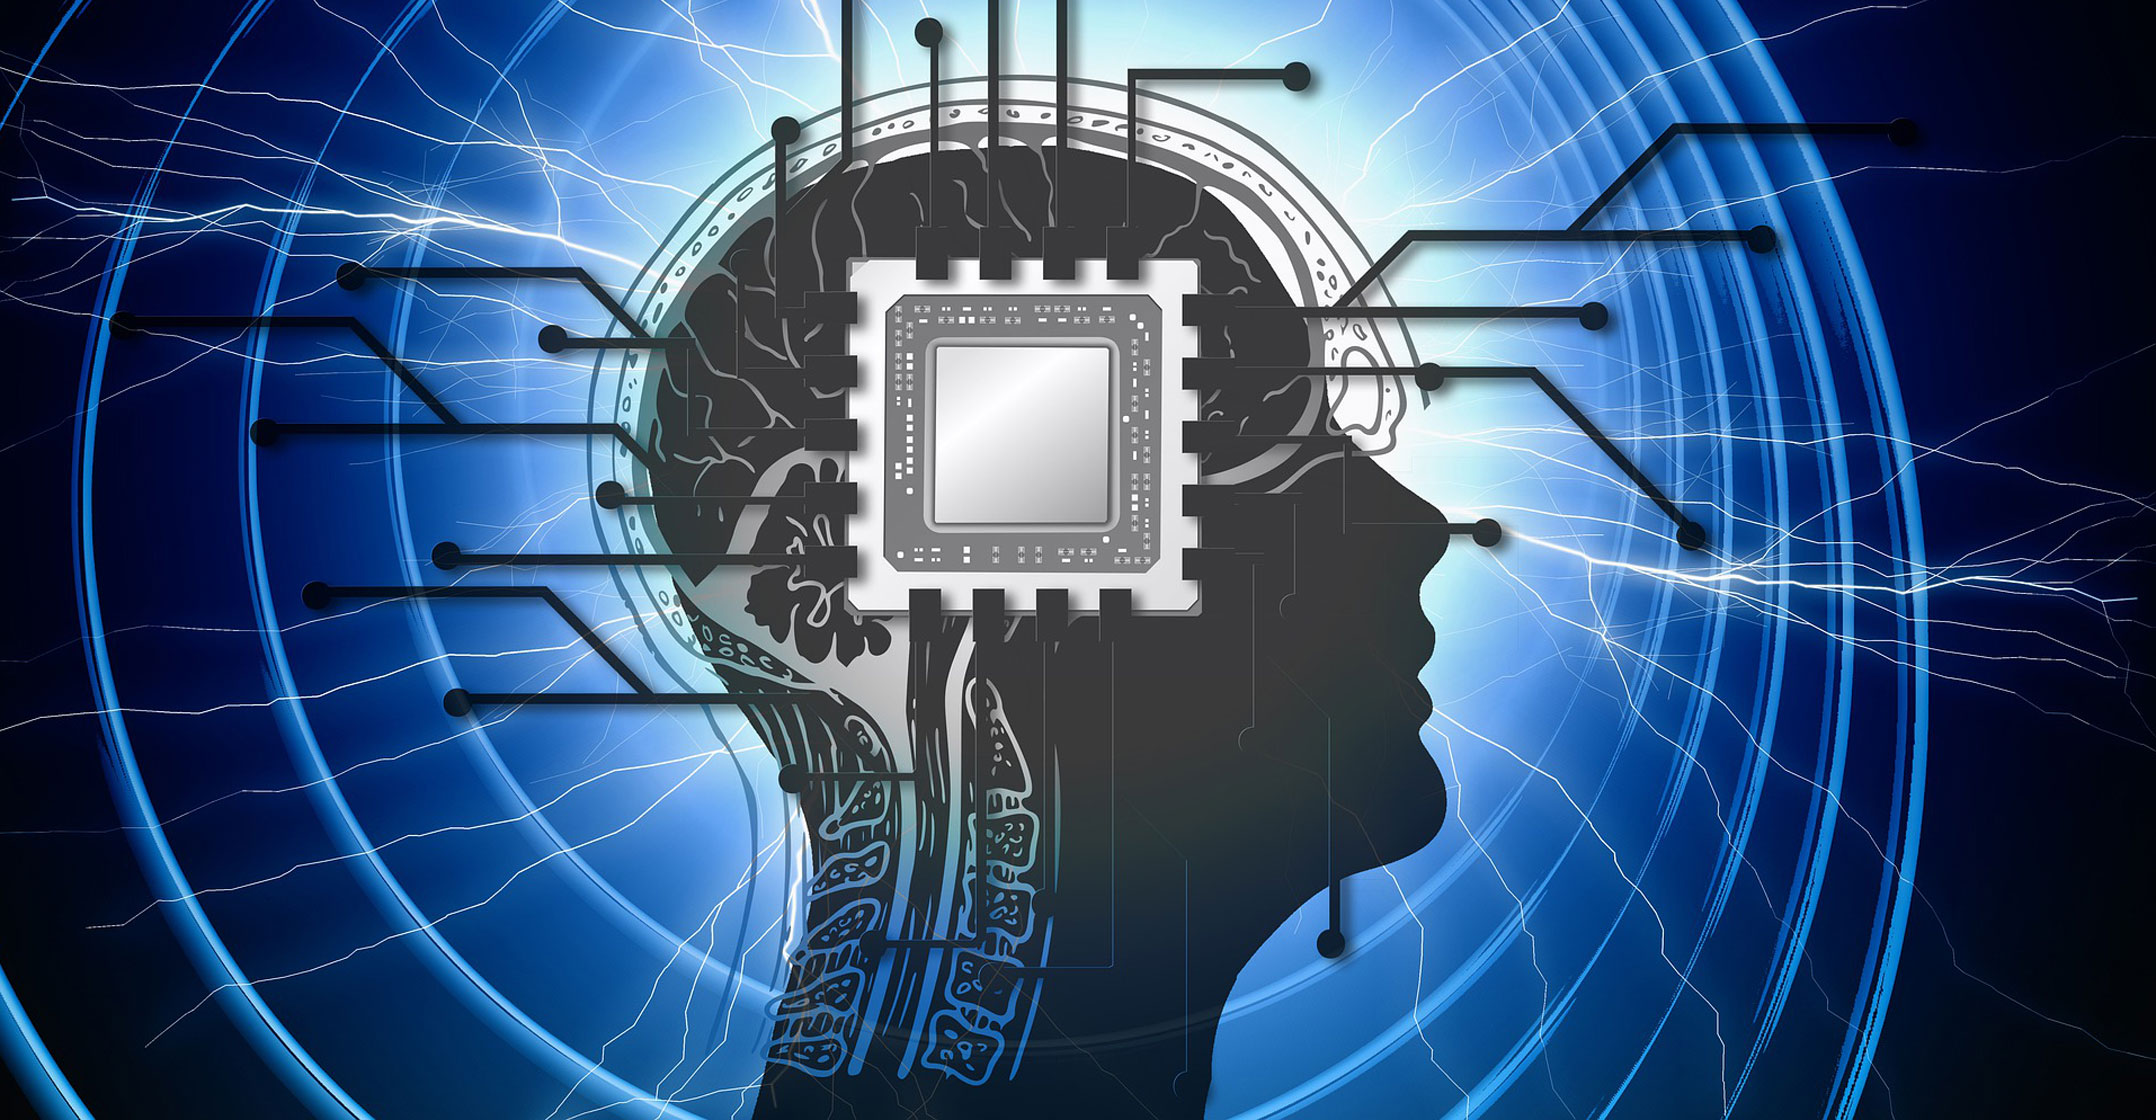 Introducing ethics to the world of AI